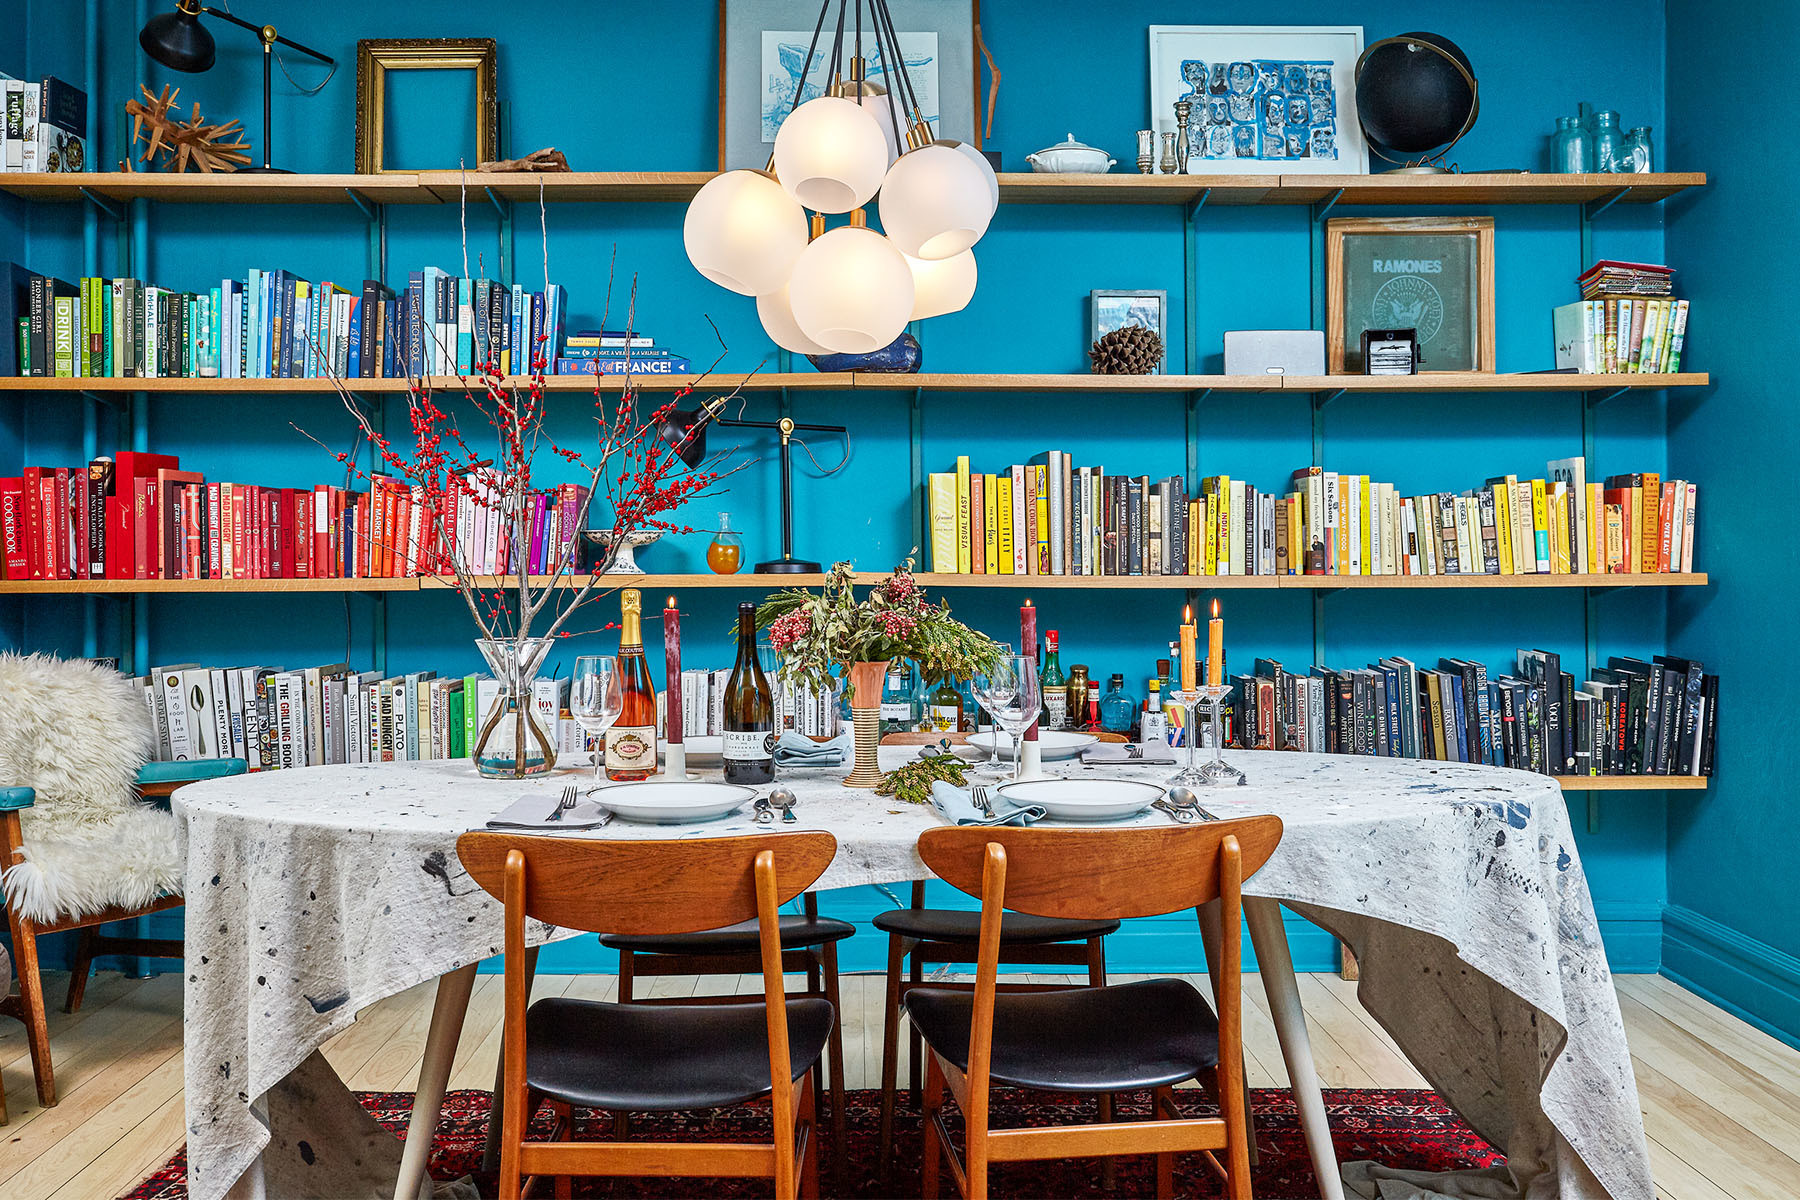 New York-based cookbook author and passionate home cook Colu Henry admits the dining room is her favorite space, awash in turquoise paint. Benjamin Moore Paint | CB2 Chandelier | Vintage Armchair | Sheepskin Town Sheepskin | Sferra Napkins | Crate & Barrel Cutlery | Laguiole Steak Knives | Danica Design Candles | Chad Silver Design Dining Table | Chairish Dining Chairs | Chad Silver Design Tablecloth | Jenni Kayne Candlestick Holders | Vintage Accent Pieces | Vintage Silkscreen | Andy Wilhelm Artwork | Vintage China.